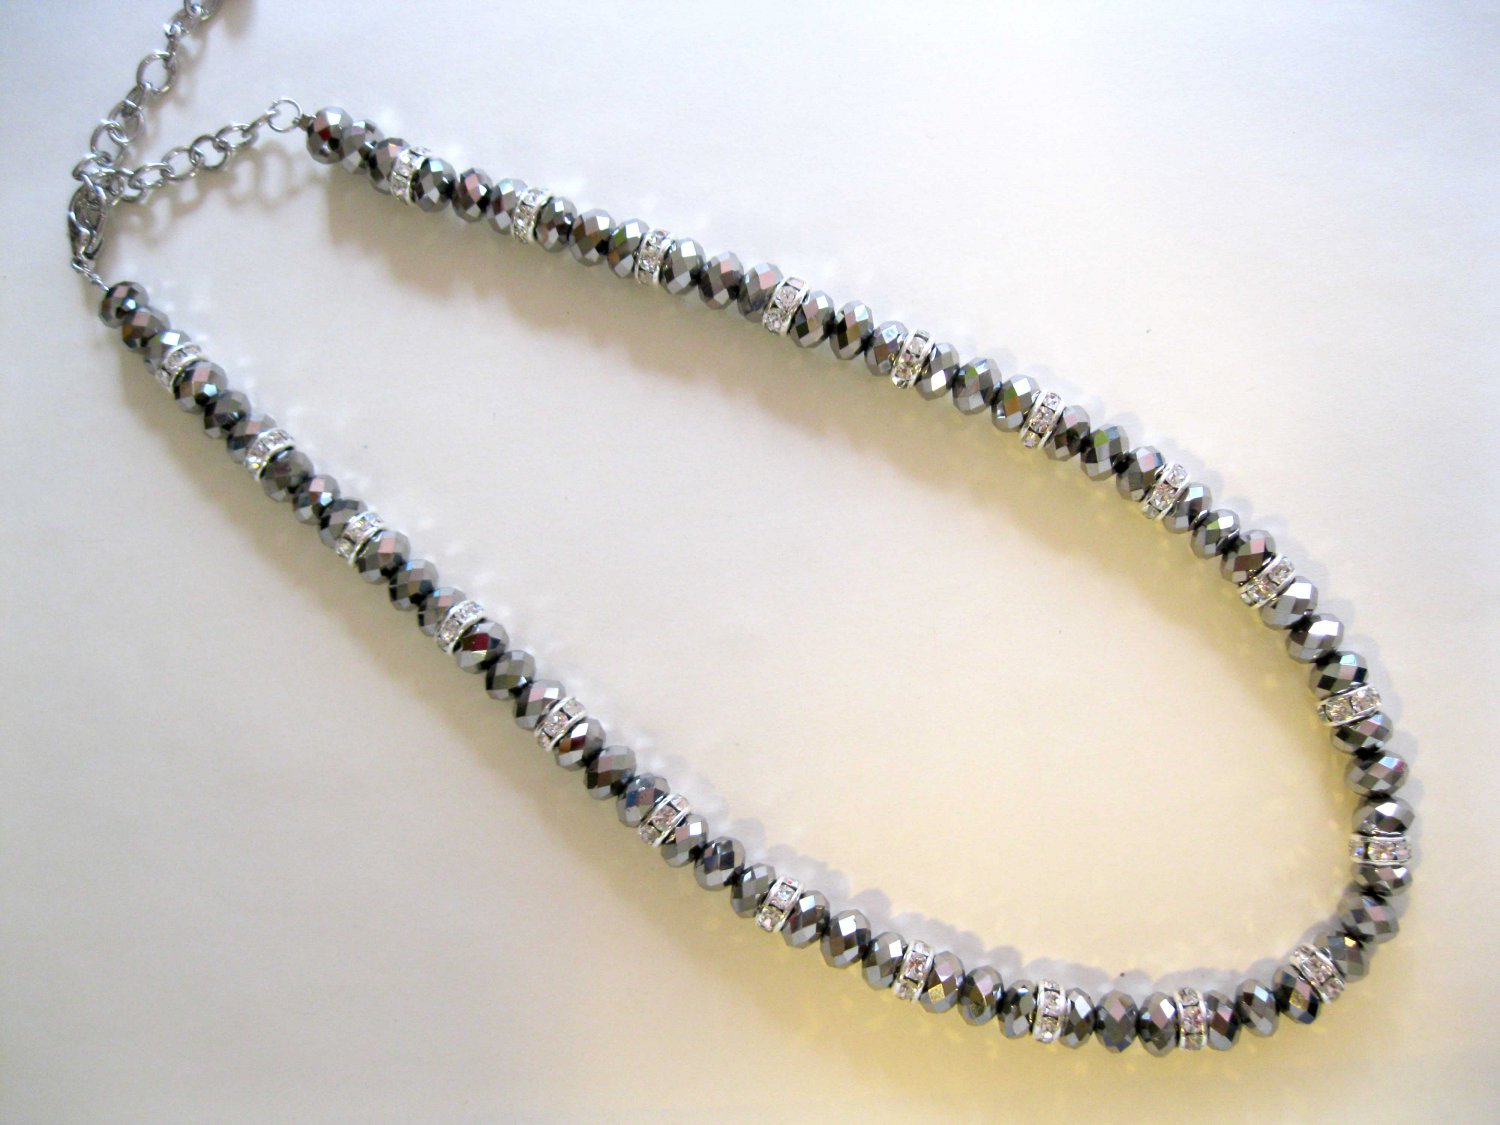 Grey necklace with crystals fashion jewelry gift {1202E}